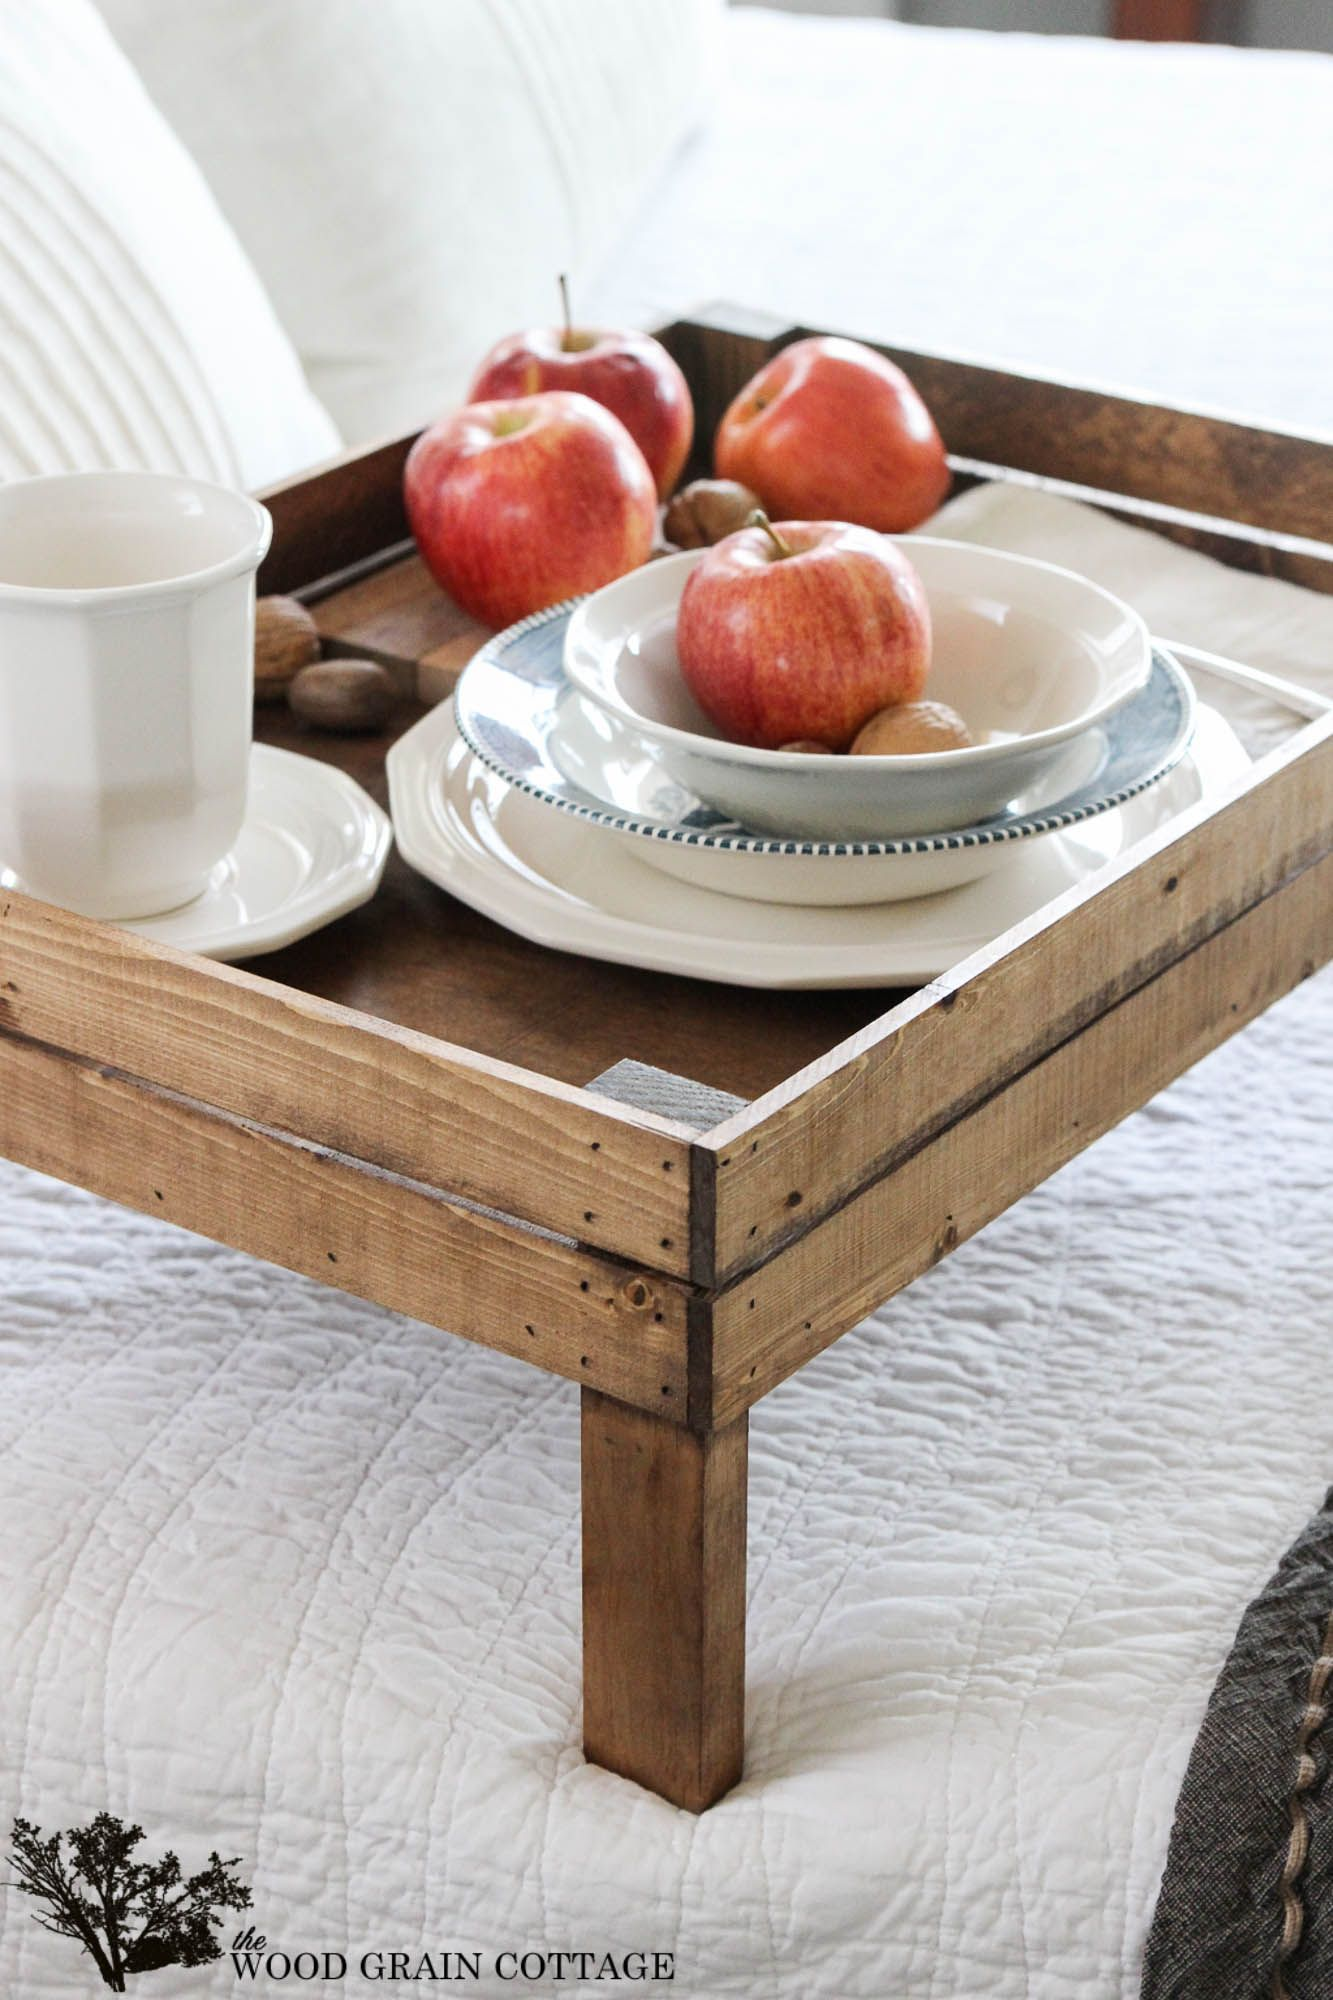 Breakfast Trays For Bed Brilliant Breakfast In Bed Tray  Bed Time Routine Bed Tray And Trays Decorating Inspiration